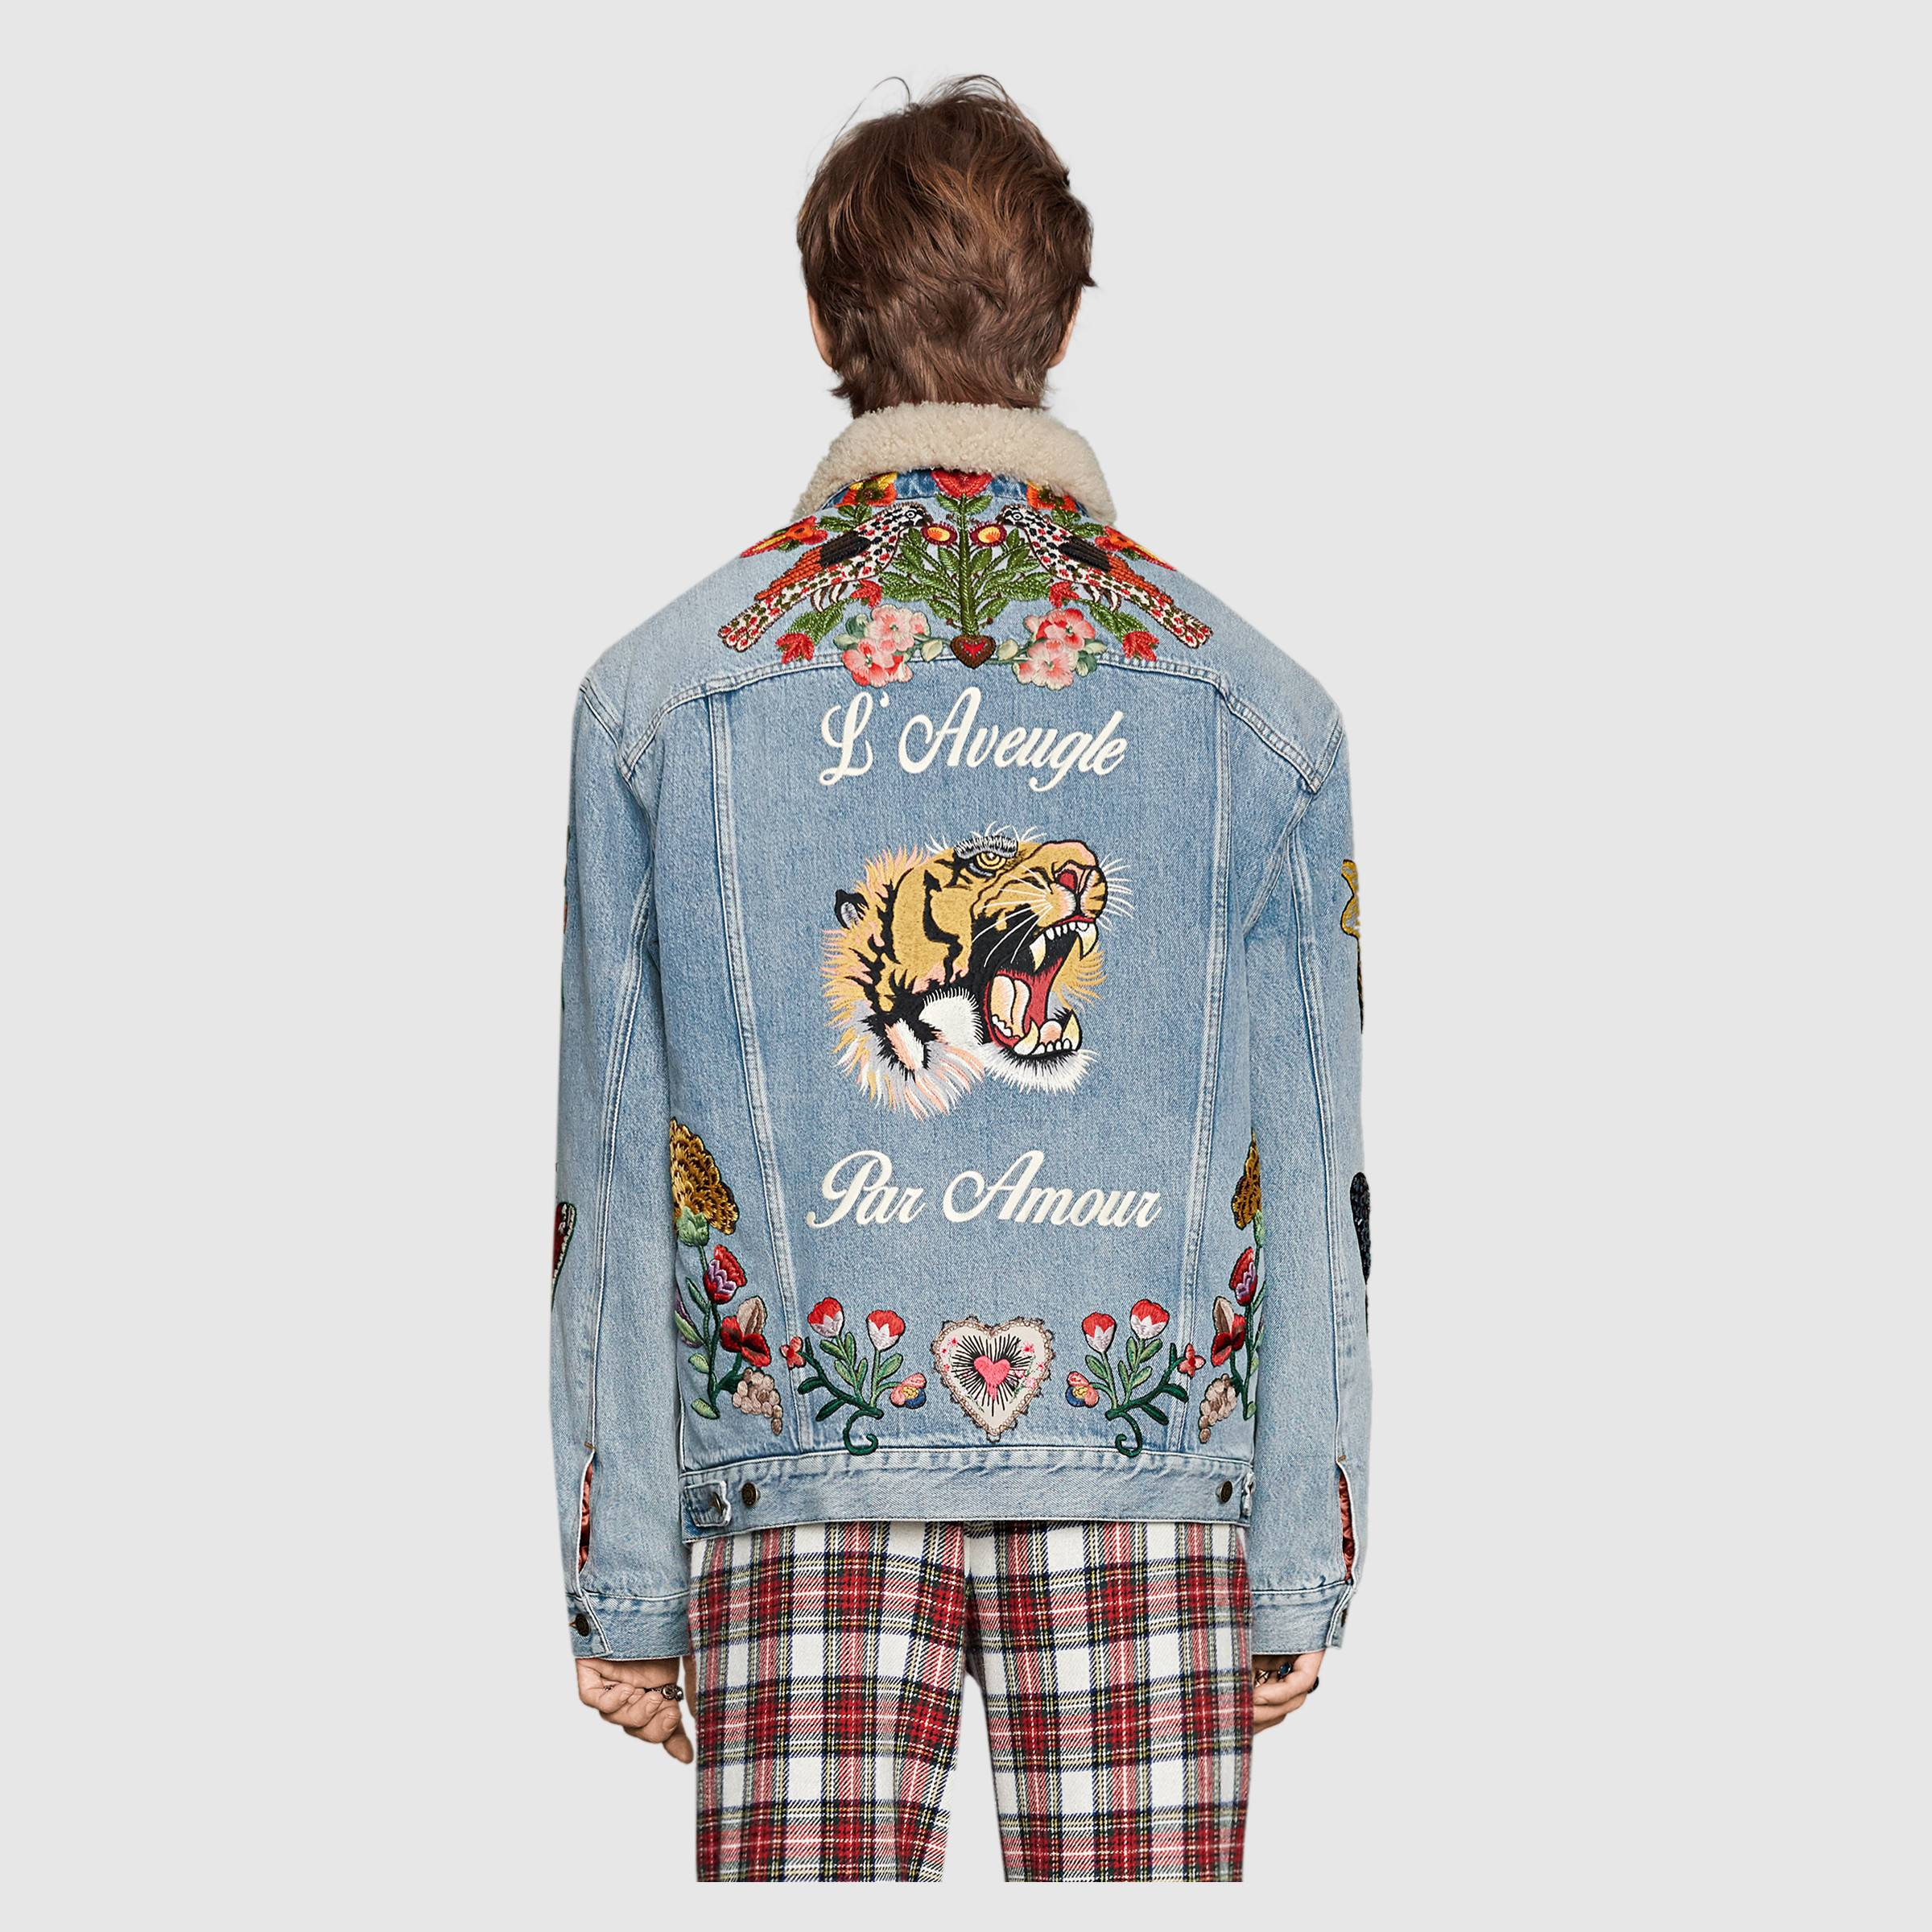 Gucci 2016 - Embroidered denim jacket with shearling$ 5,280